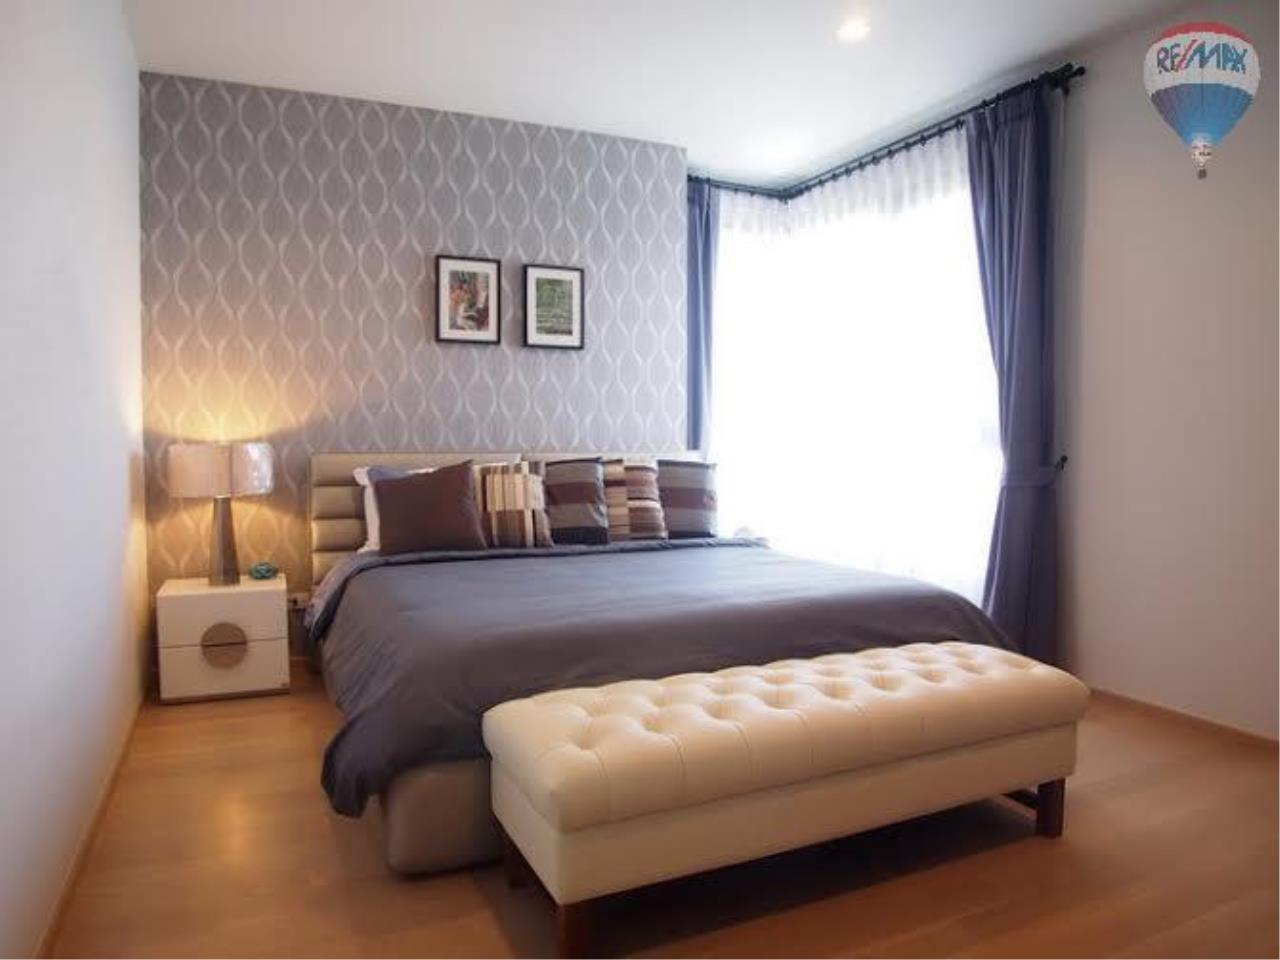 RE/MAX Properties Agency's 2 Bedrooms 100 Sq.M. in HQ by Sansiri for sale 23